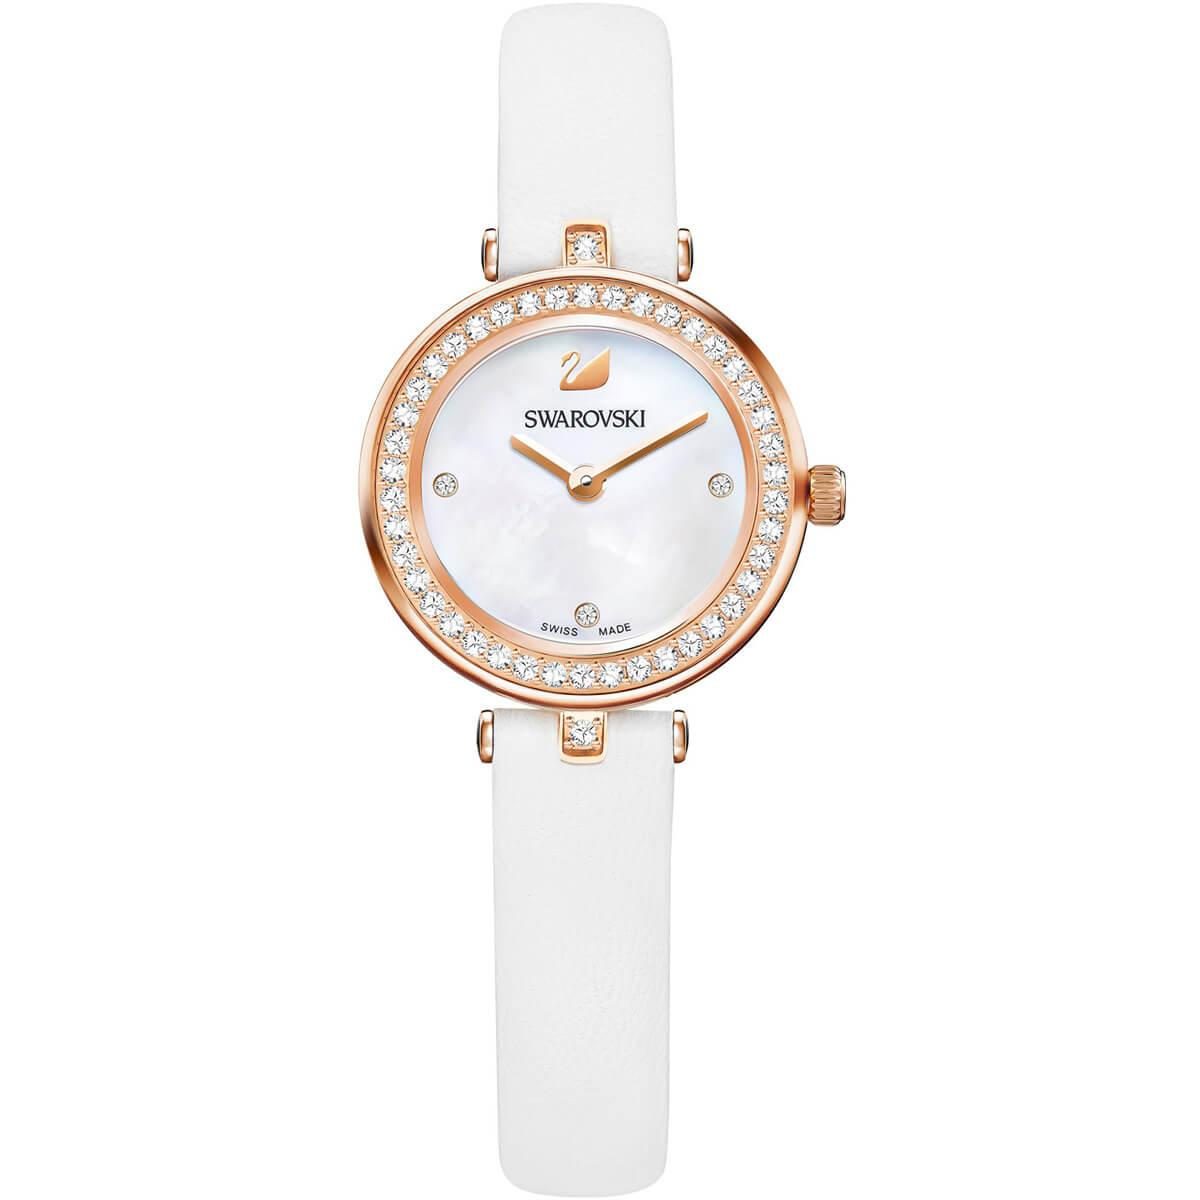 2419ce01e Swarovski - White Aila Dressy Mini Watch - Lyst. View fullscreen